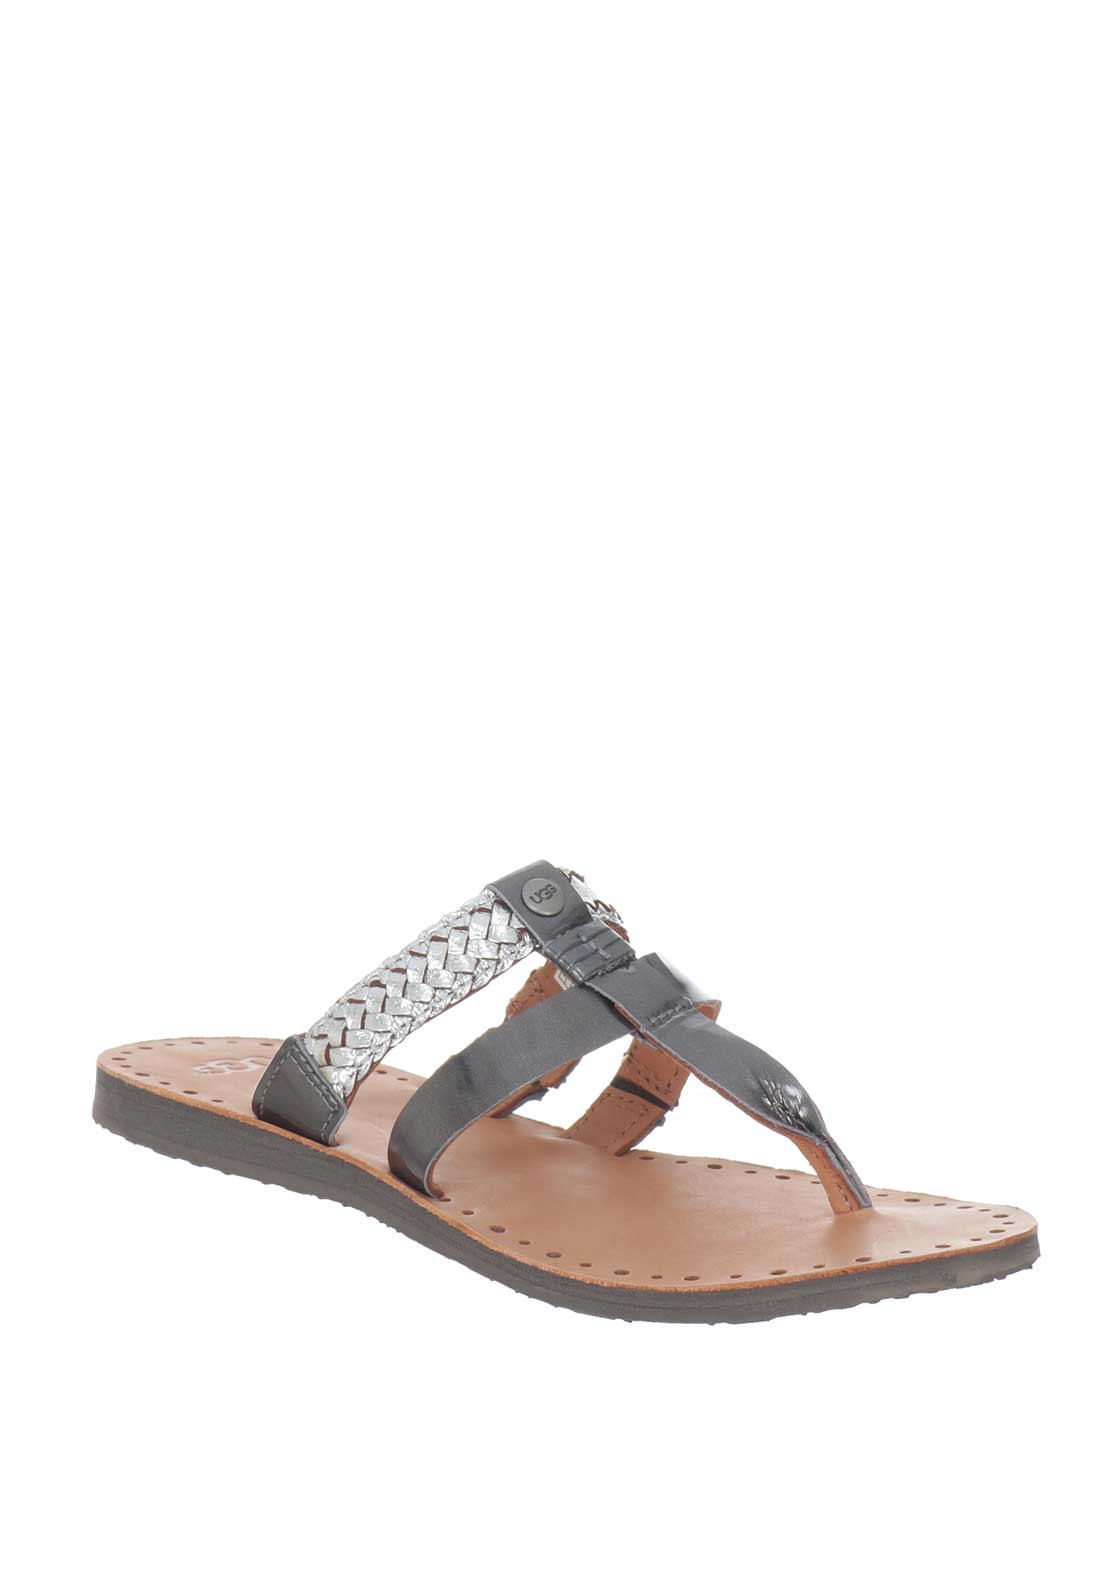 Ugg Australia W Audra Sandals Color: Silver